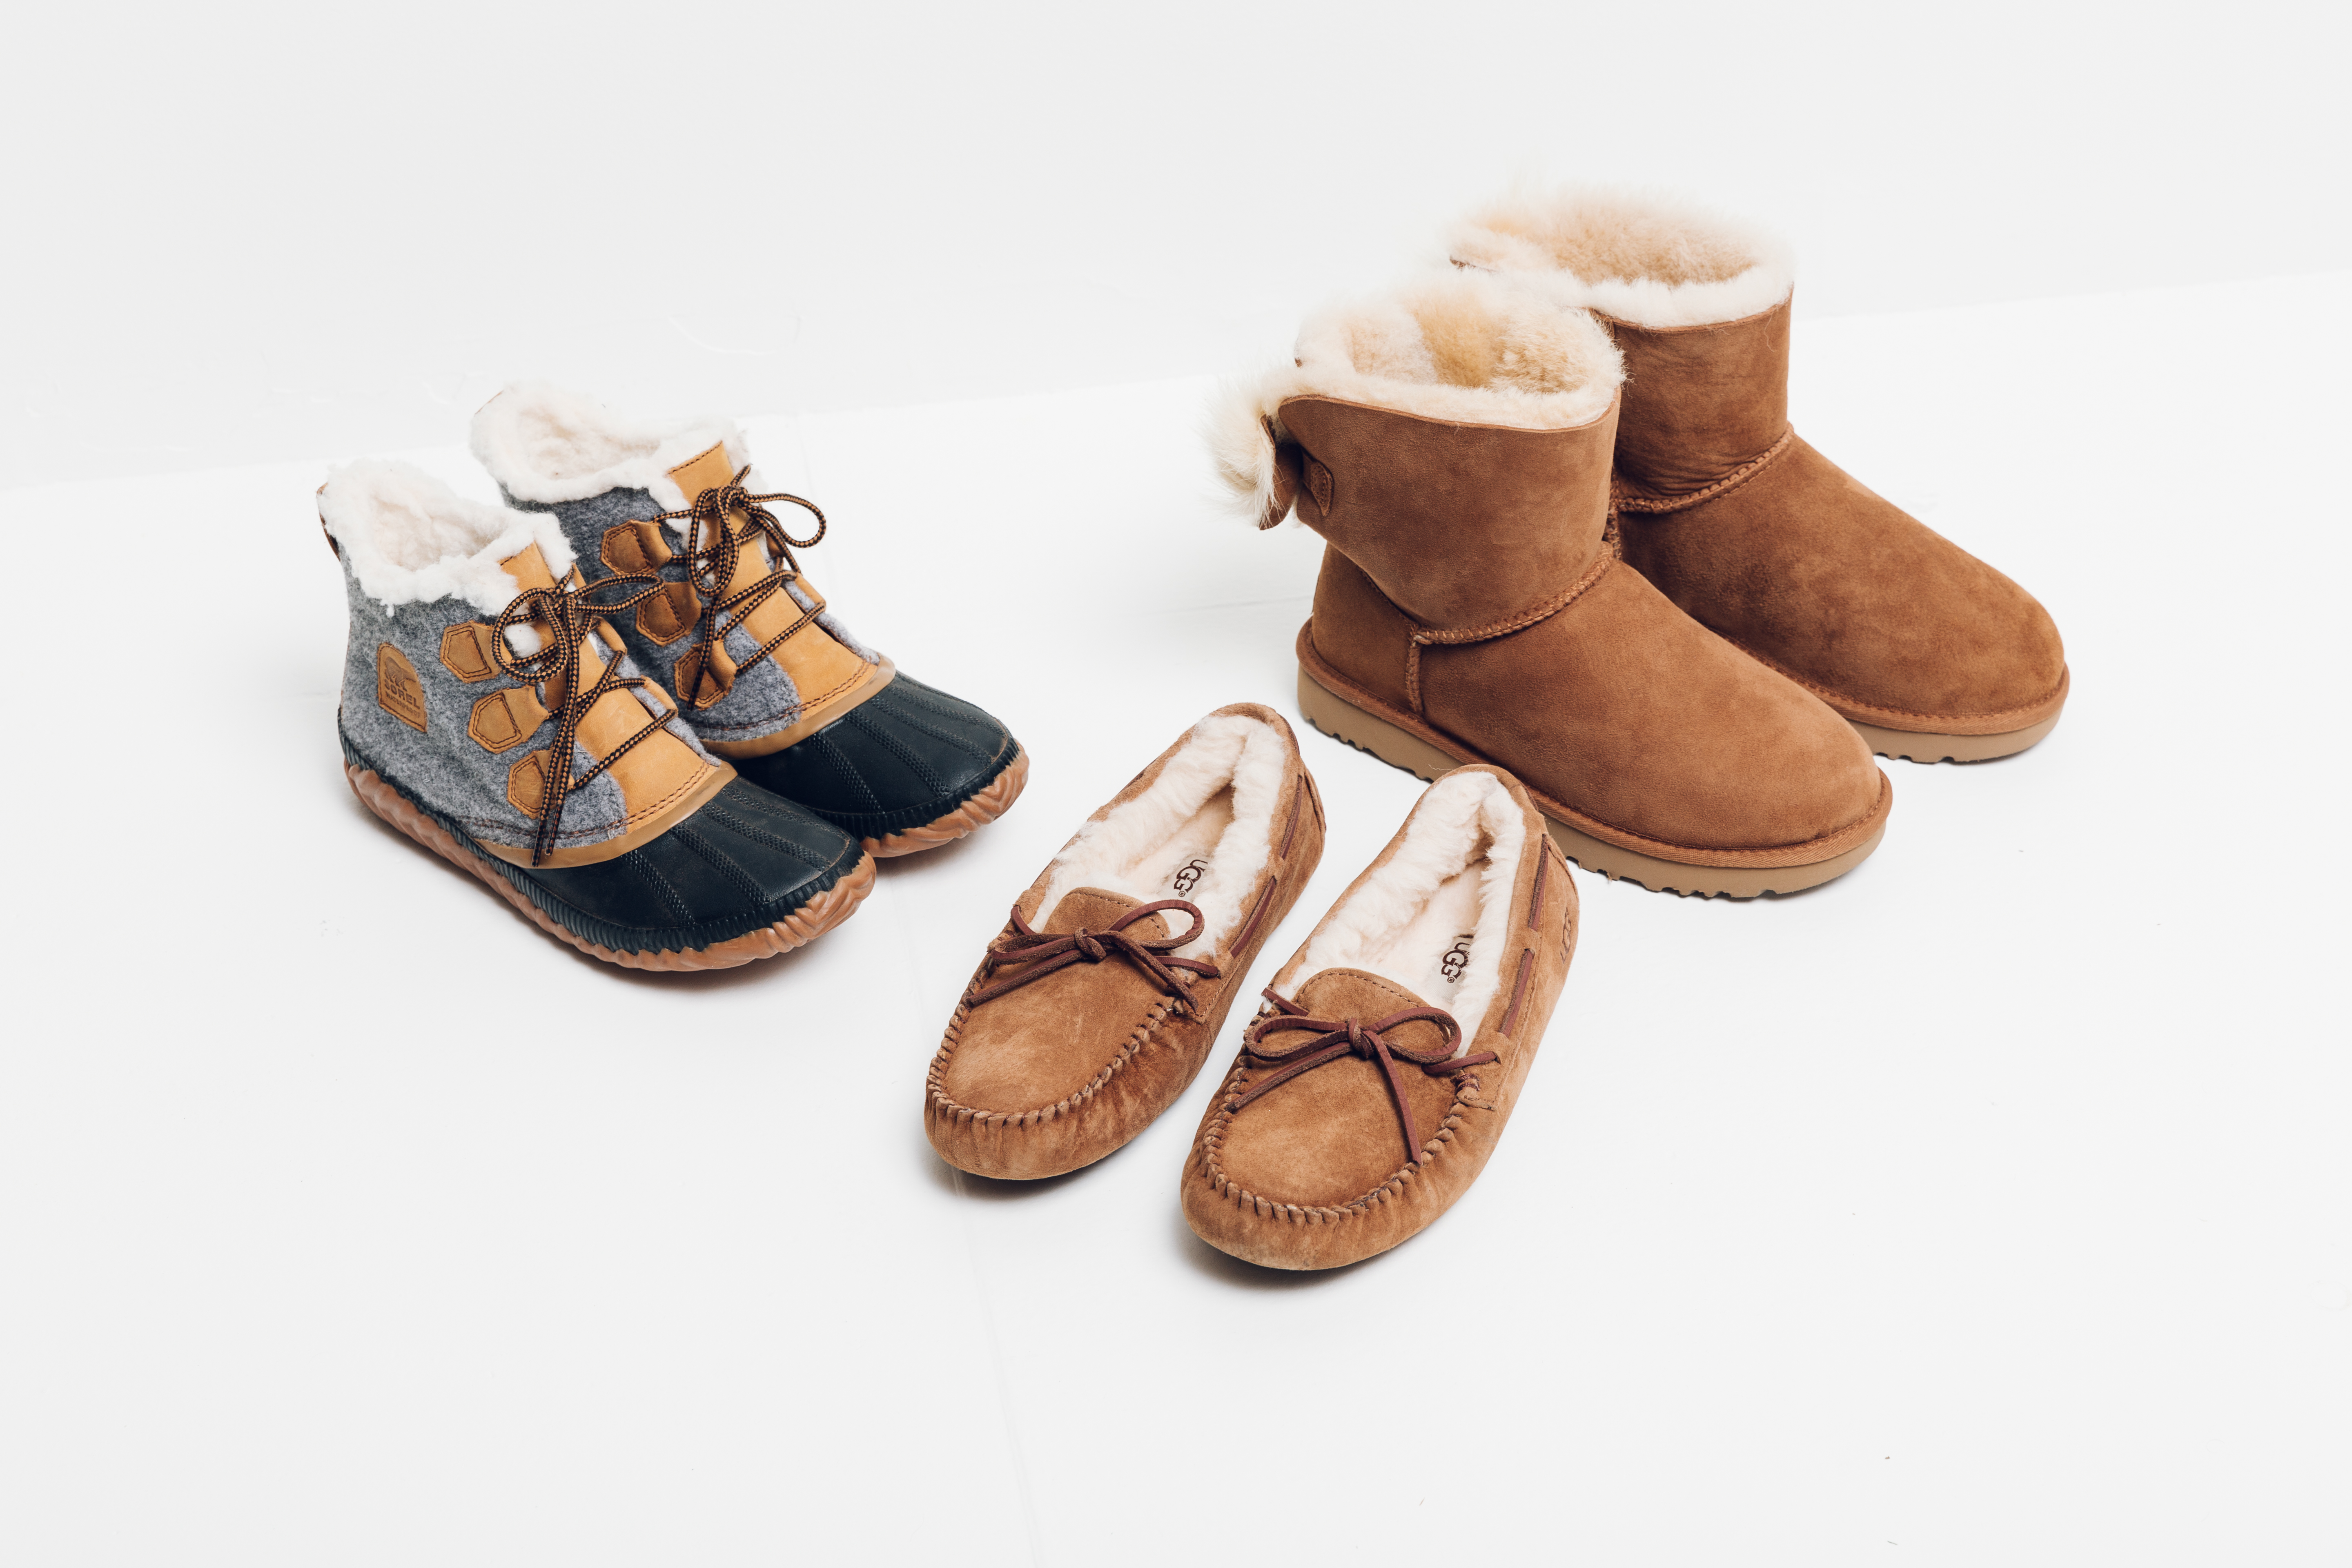 Women's Christmas Gifts at Buckle From Sorel and Ugg